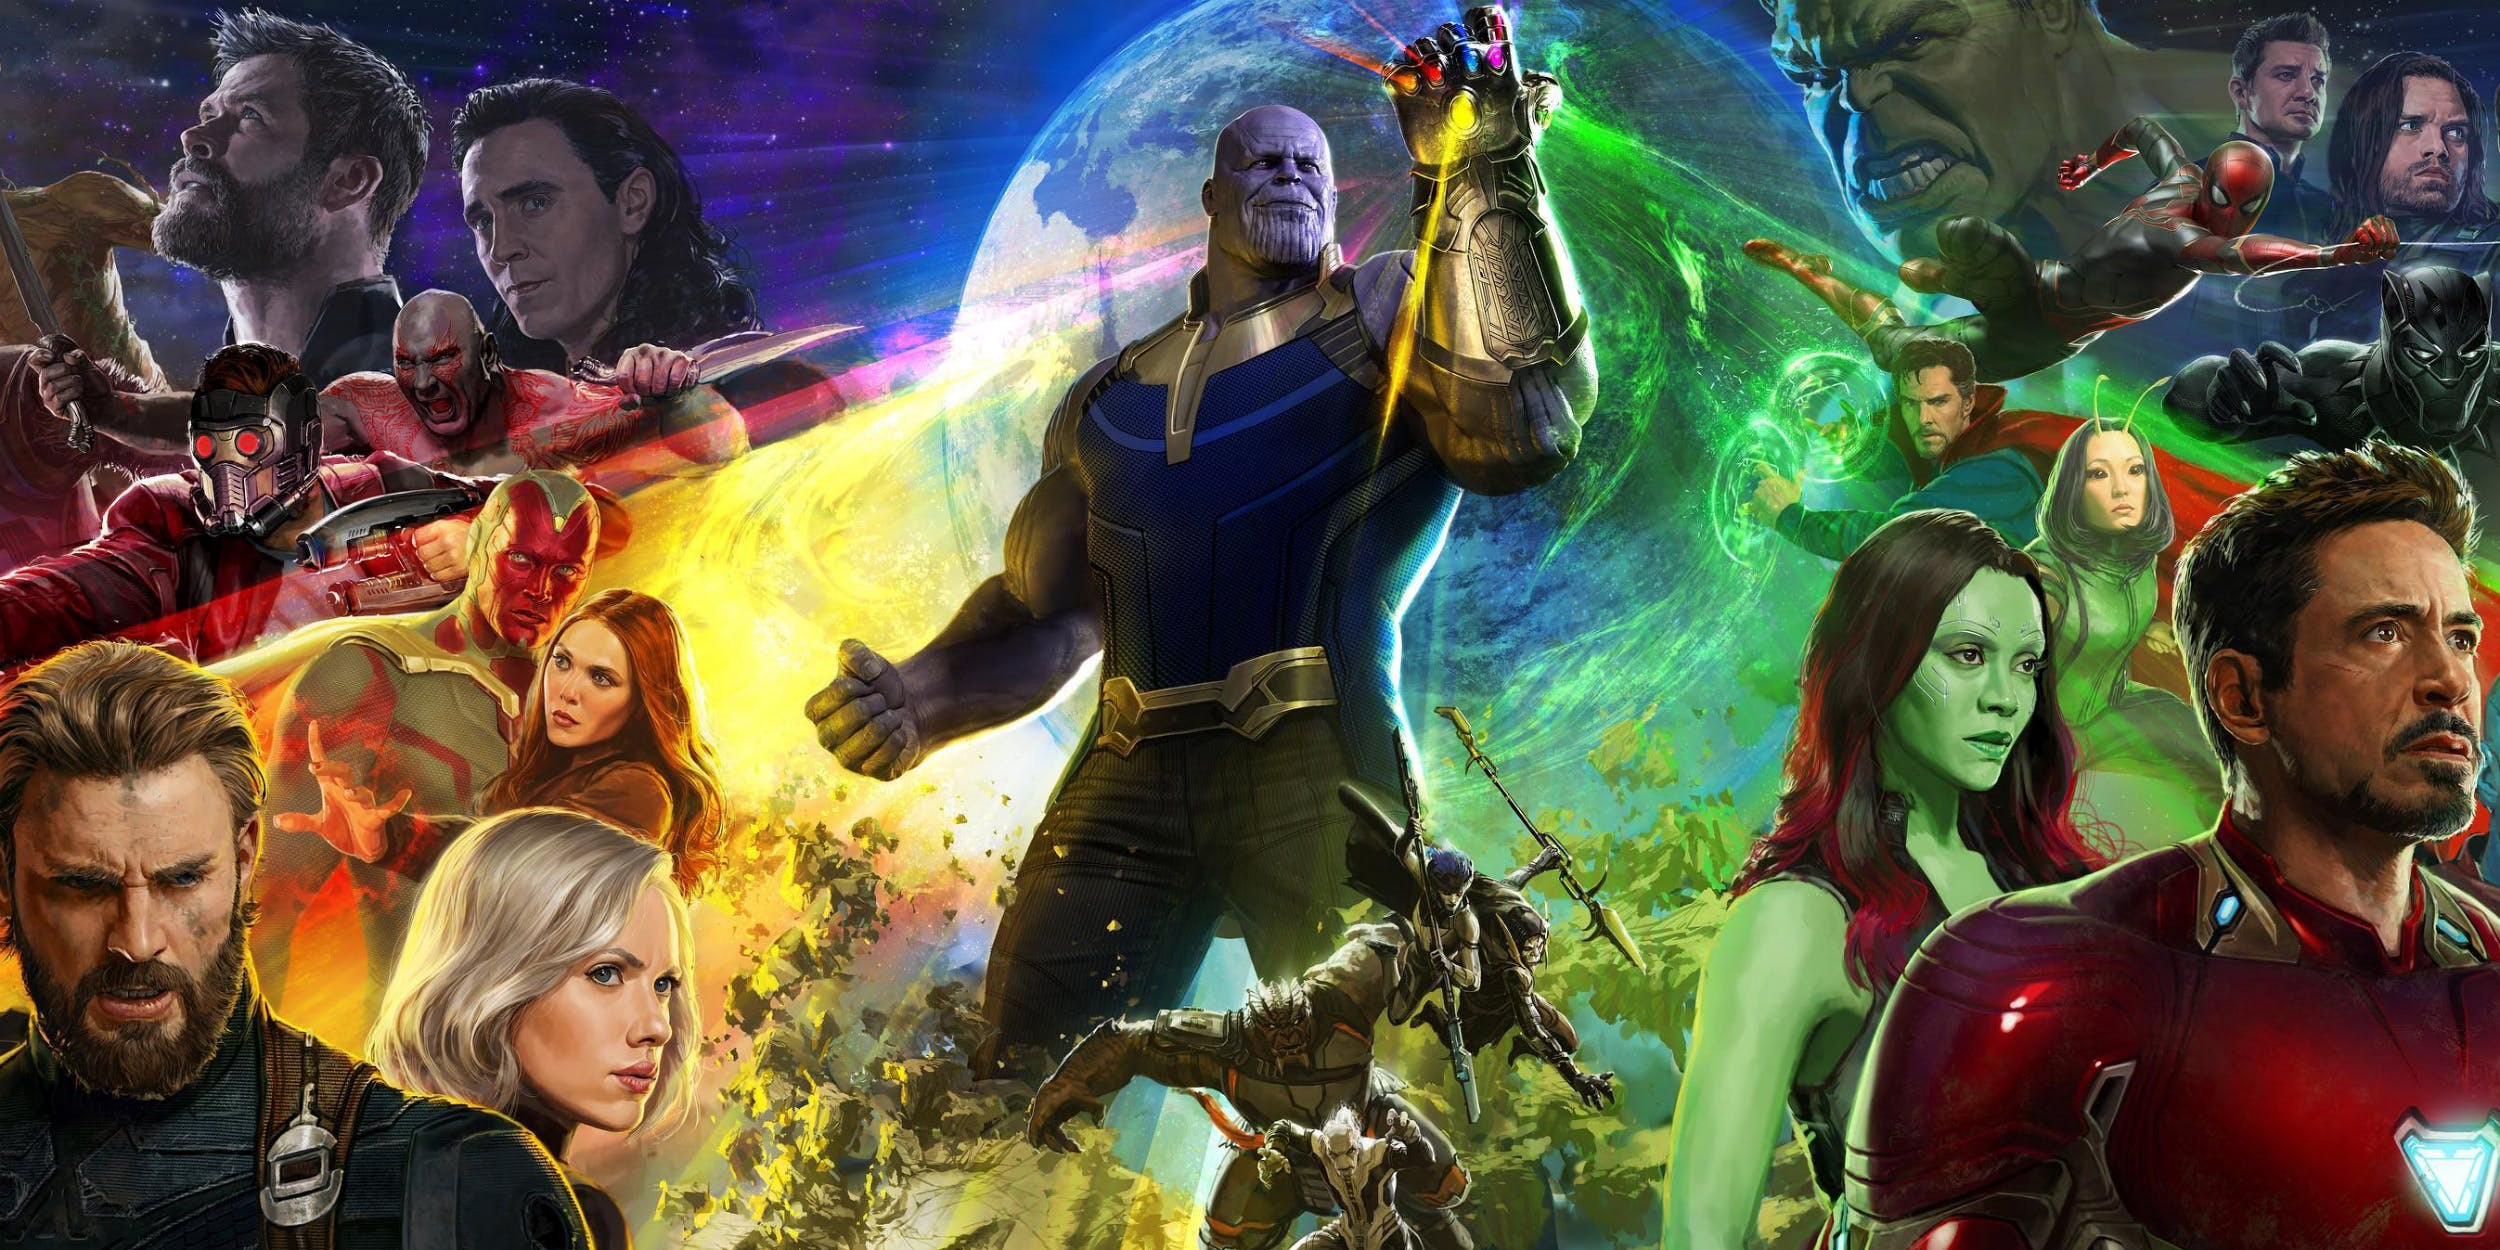 AVENGERS INFINITY WAR is a Blu-ray You'll Want to Snap Up